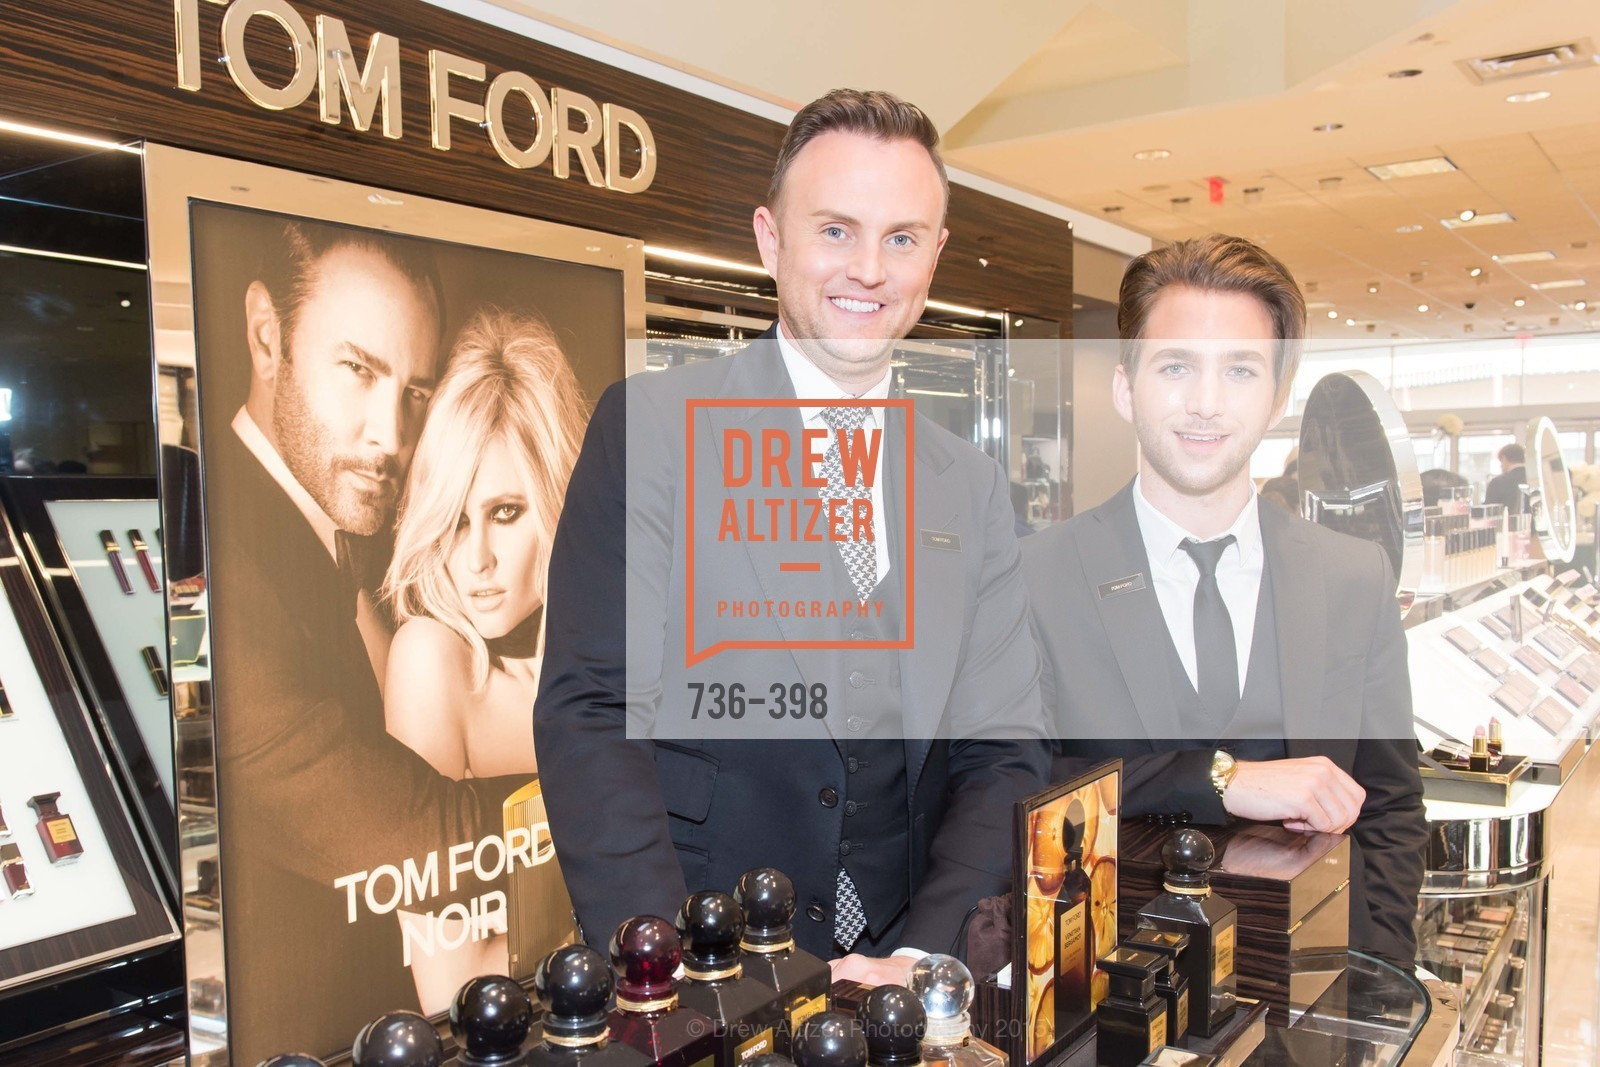 Todd Davidson, Carter Daniel, Project Beauty at Neiman Marcus Palo Alto, Neiman Marcus, October 16th, 2015,Drew Altizer, Drew Altizer Photography, full-service agency, private events, San Francisco photographer, photographer california